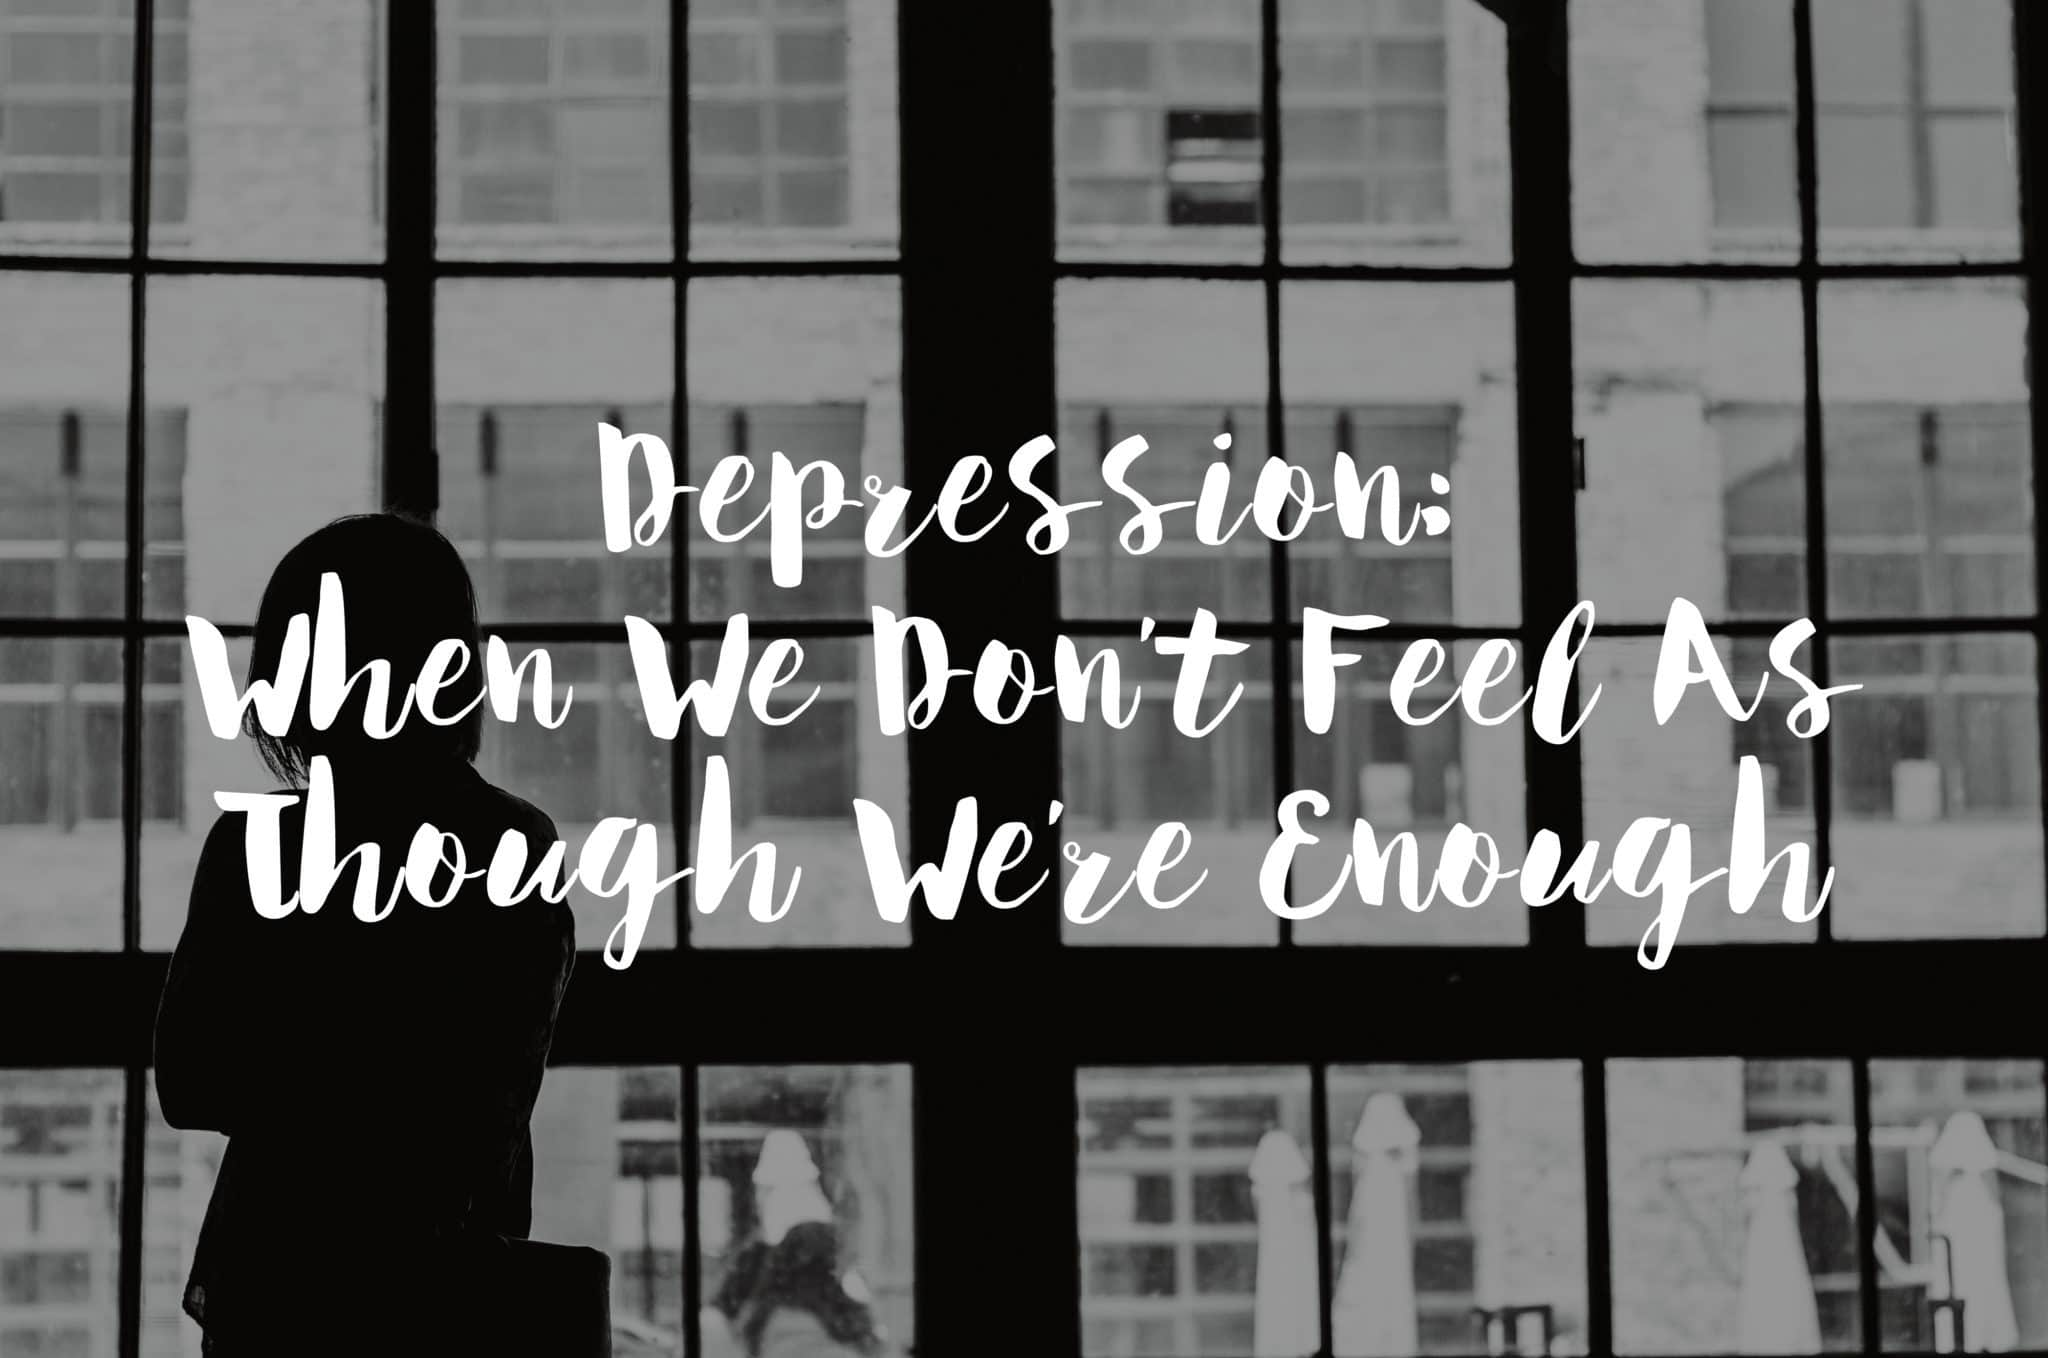 Depression: When We Don't Feel As Though We're Enough